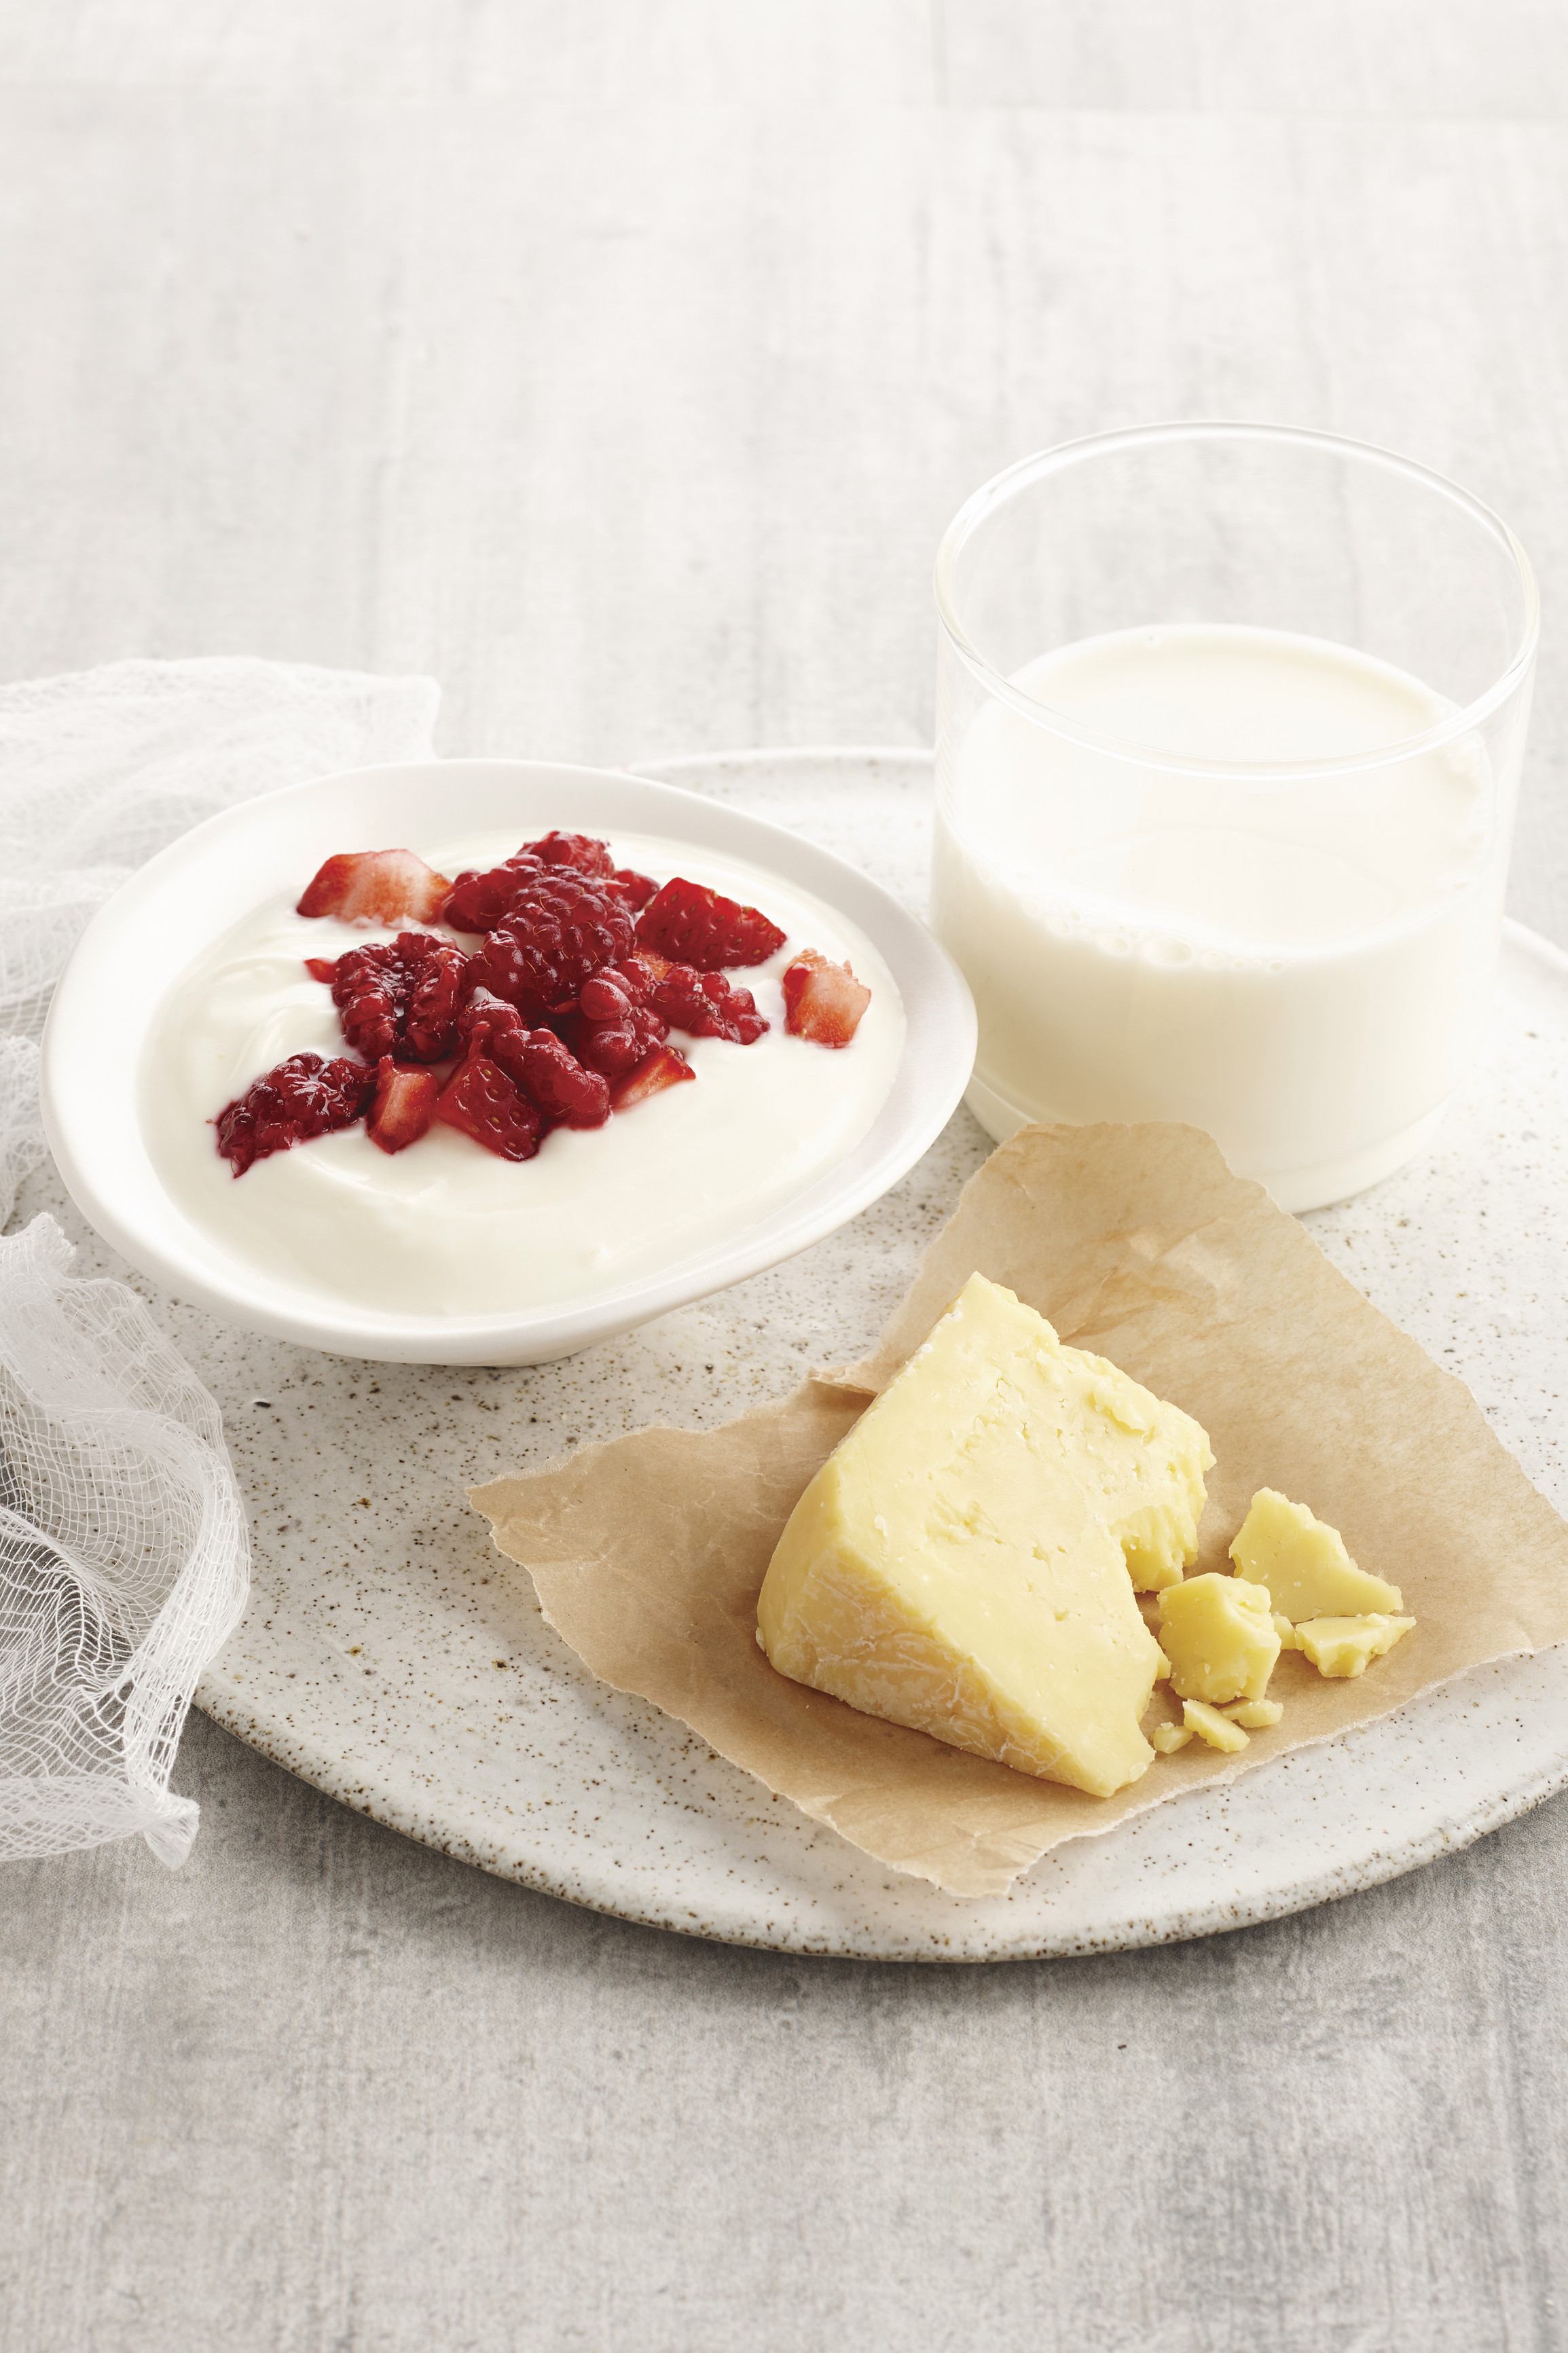 Wedge of cheese, glass of milk and bowl of yoghurt and berries